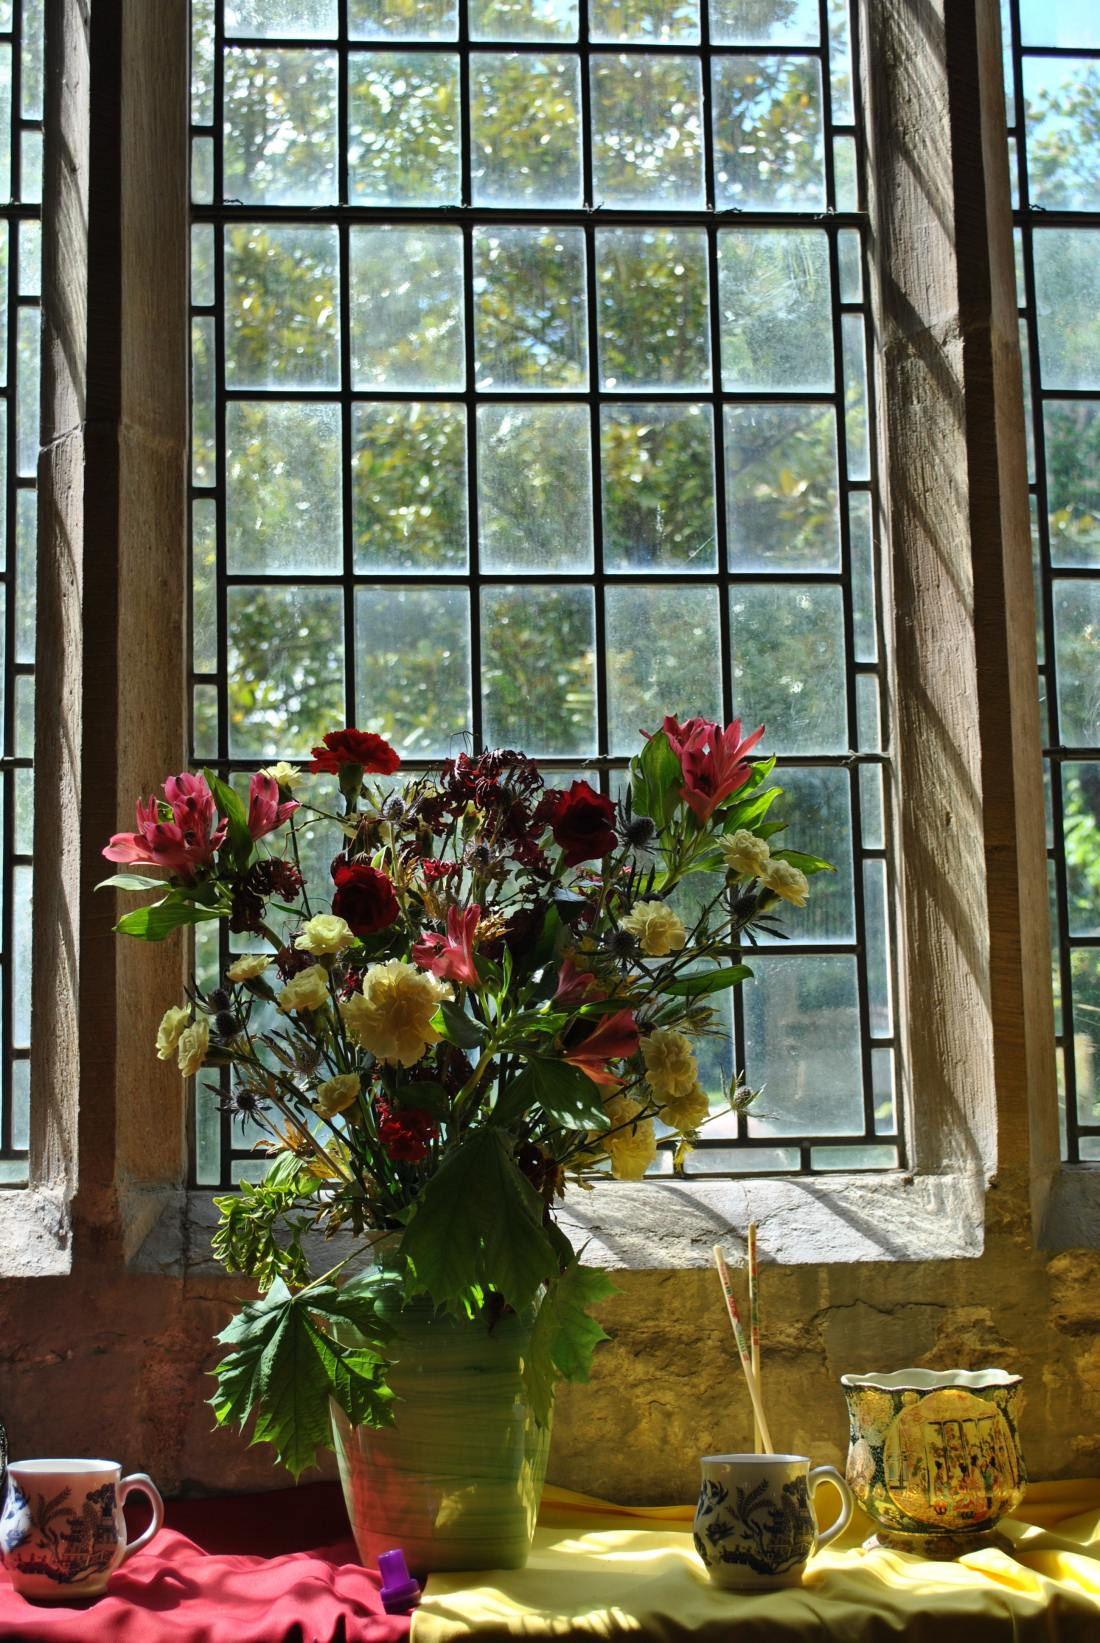 flowers-christianity-church-window-flower-arrangement-3677209